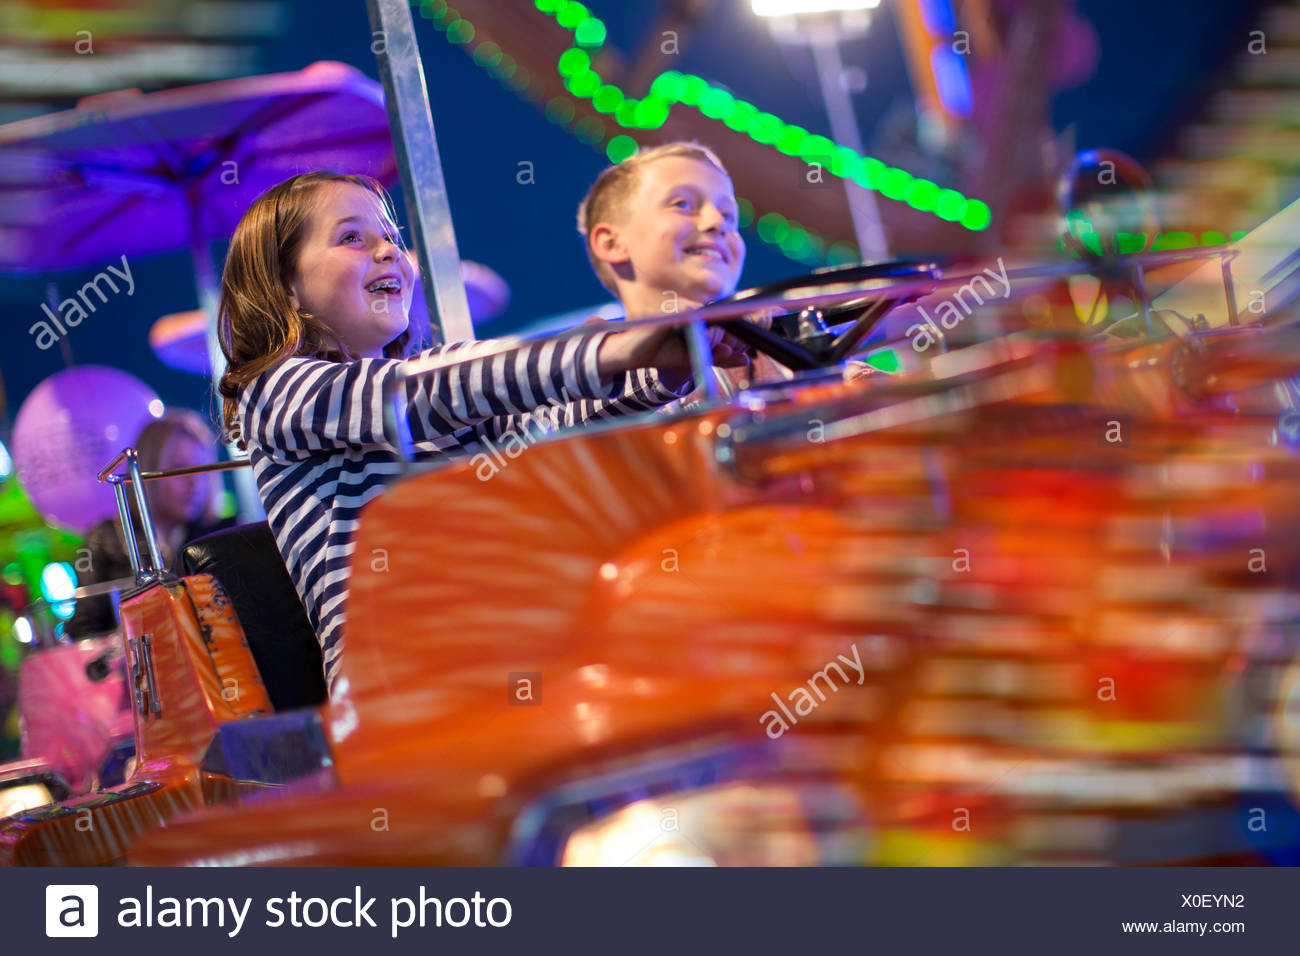 Brother and sister on fairground ride at night - Stock Image